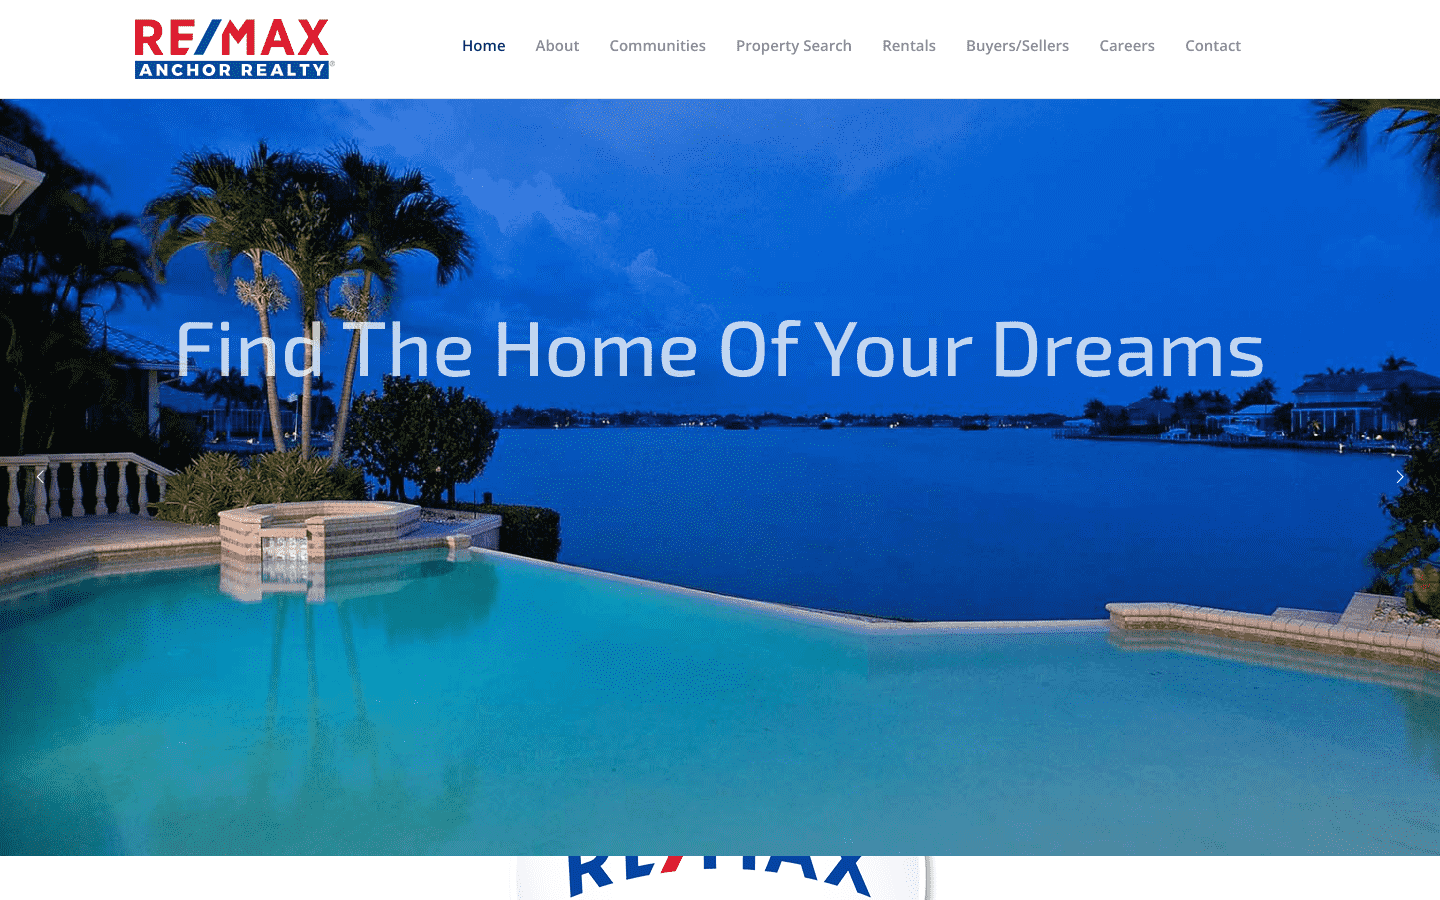 Remax Anchor Realty reviews and complaints